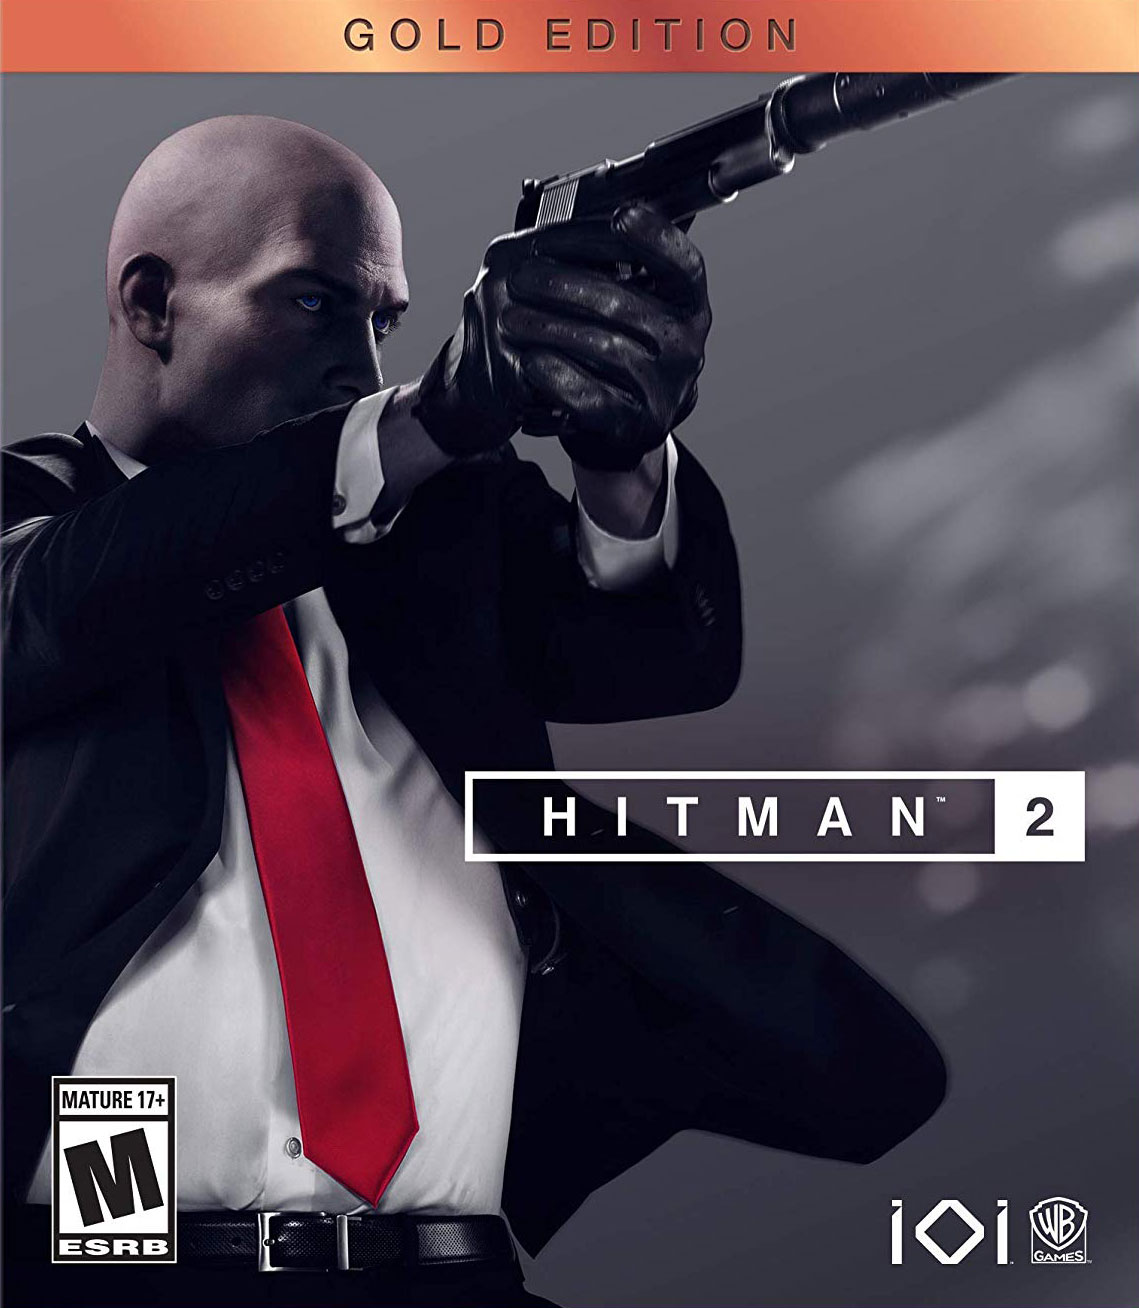 https://img5.downloadha.com/hosein/files/2018/11/HITMAN-2-gold-edition-pc-cover-large.jpg